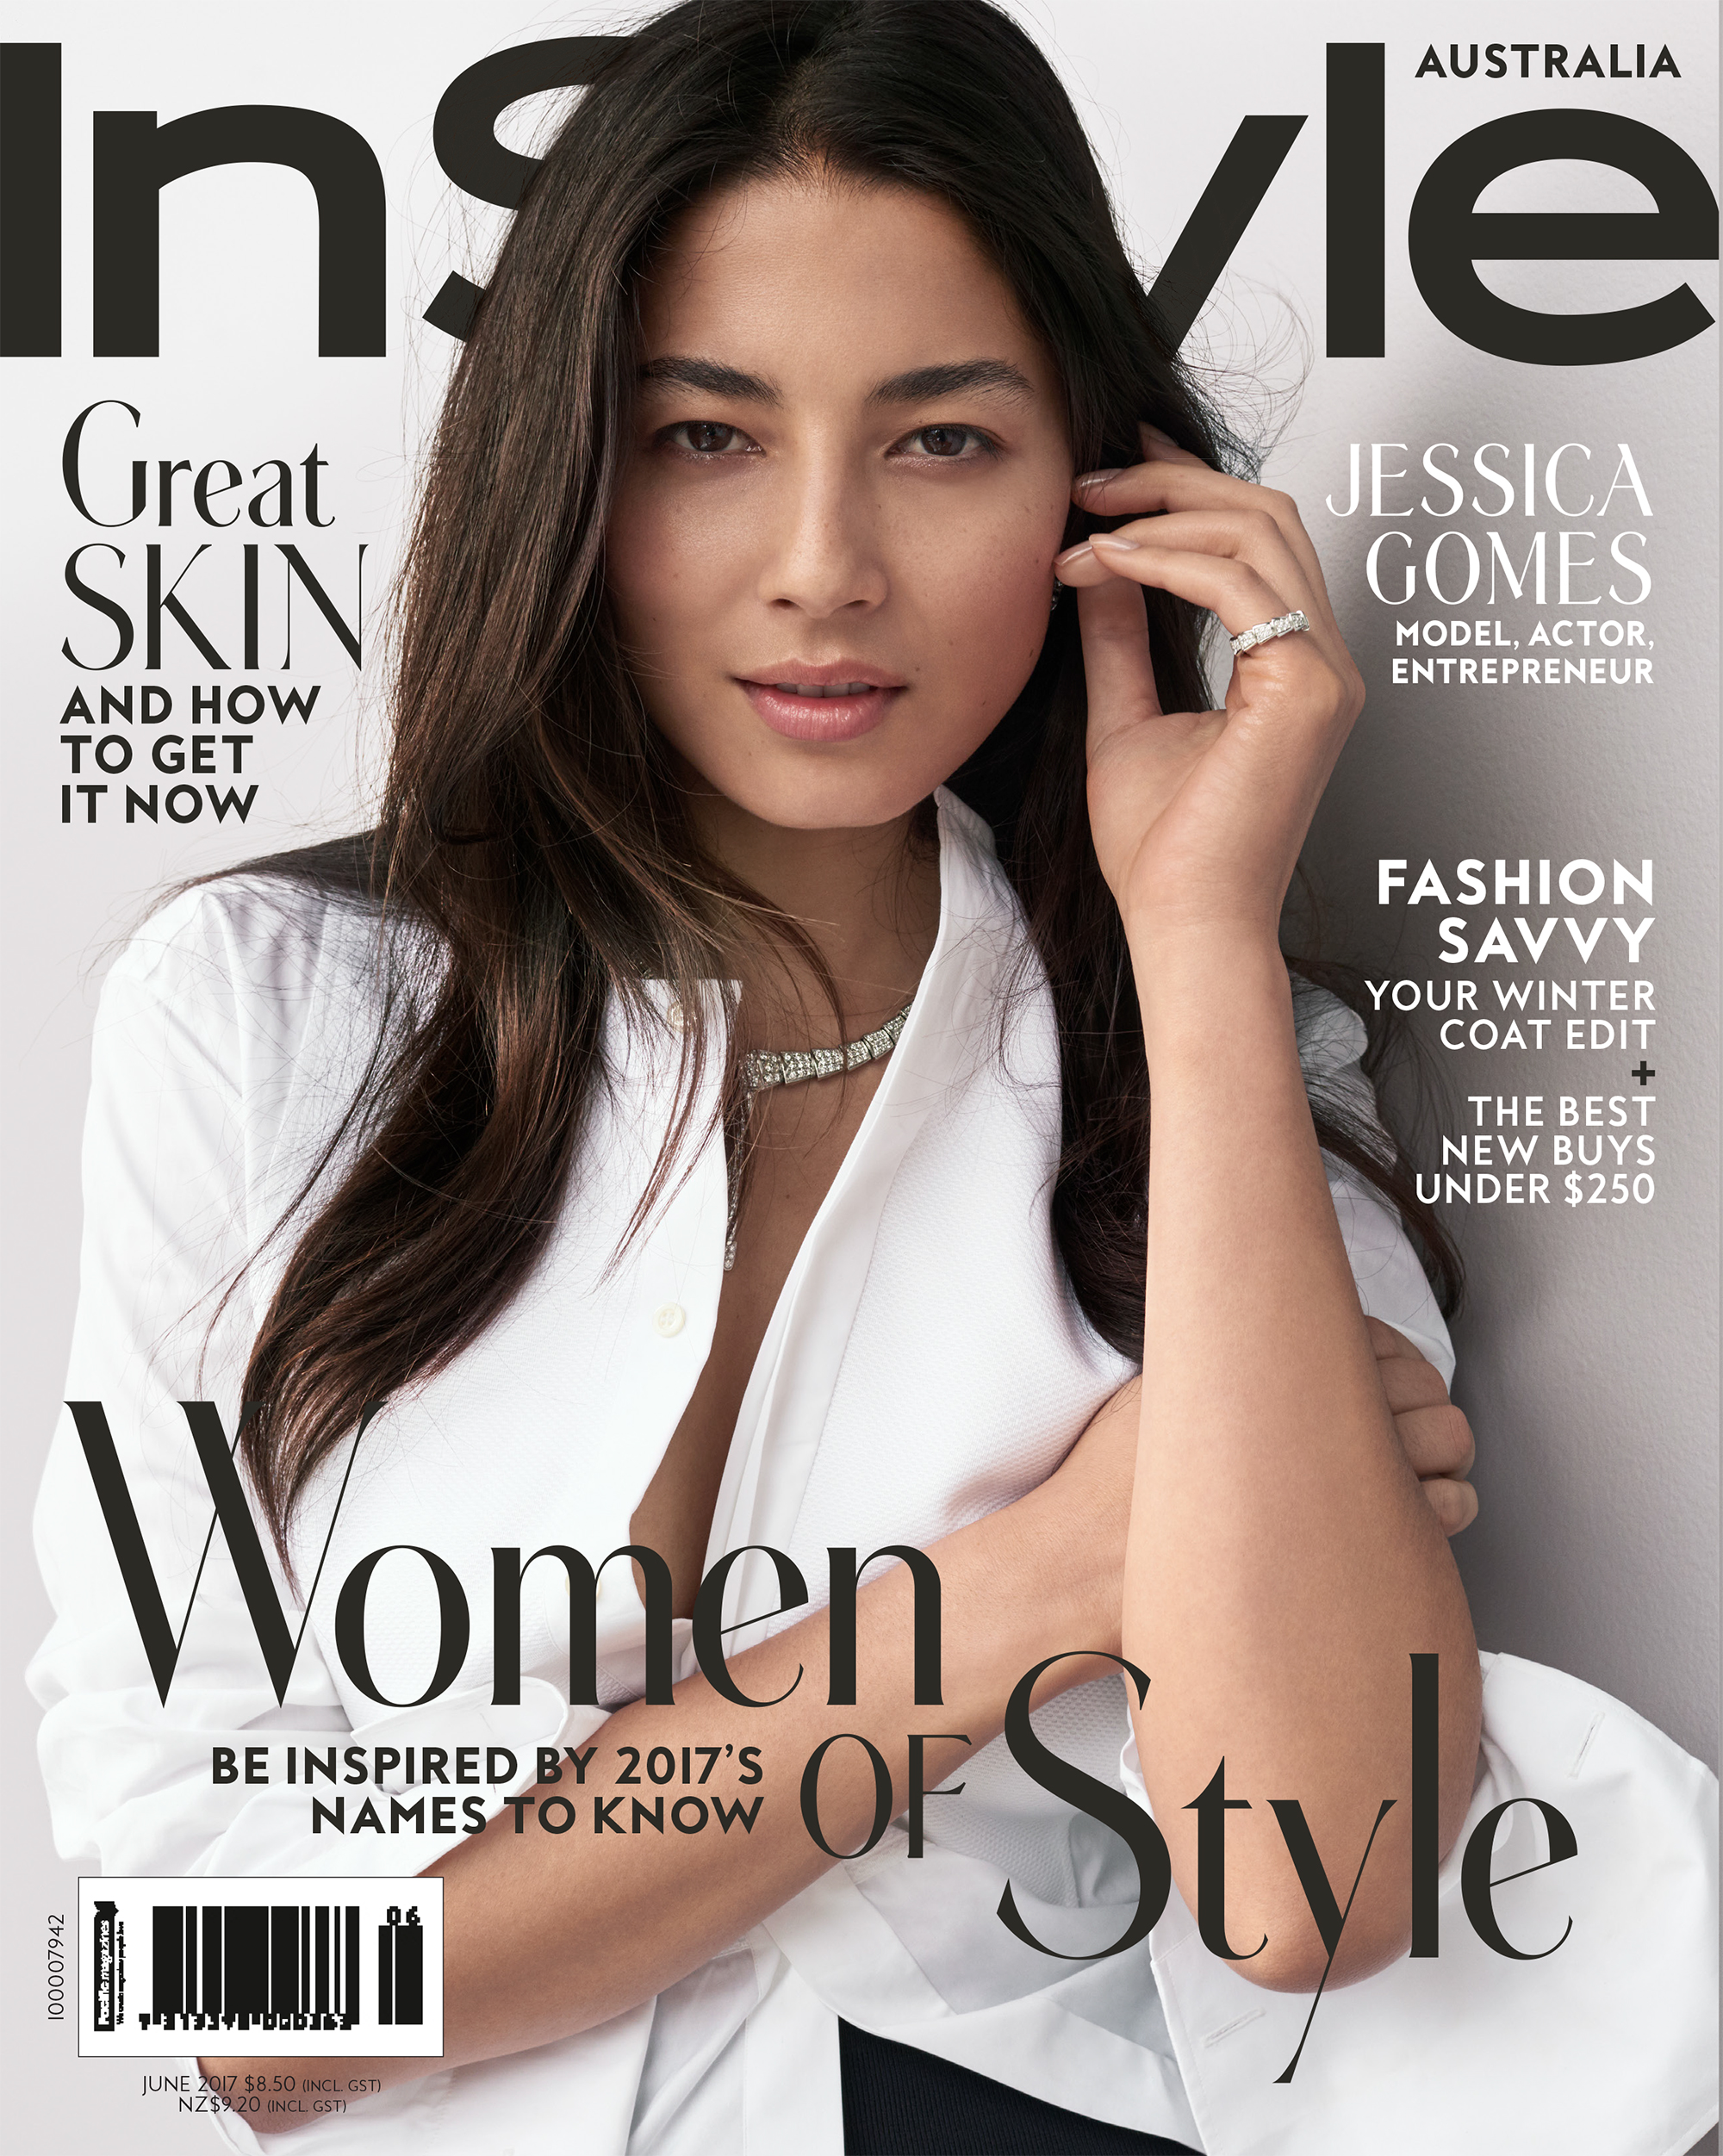 Jessica-Gomes-Instyle-cover-2017-4.jpg